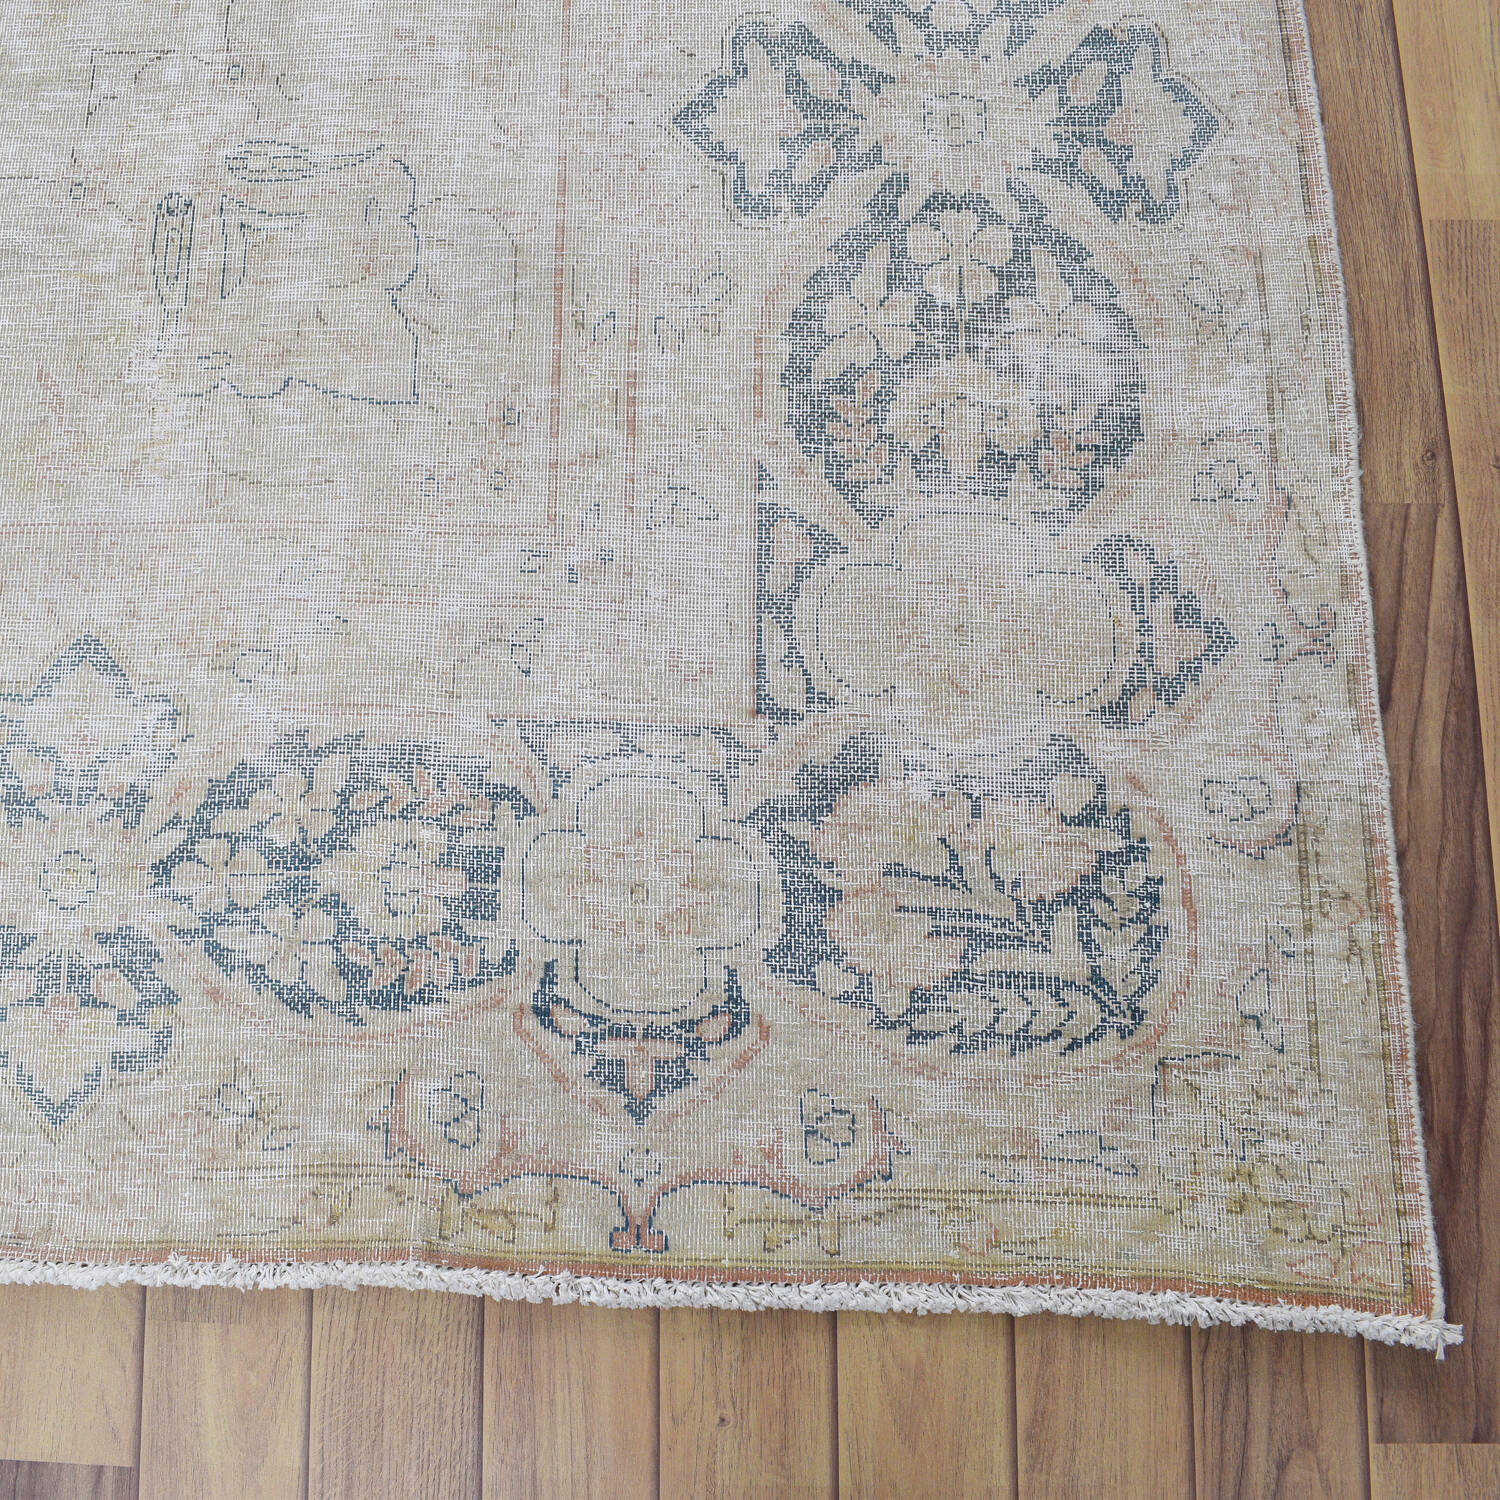 Antique Muted Floral Medallion Kerman Persian Distressed Area Rug 10x13 image 5